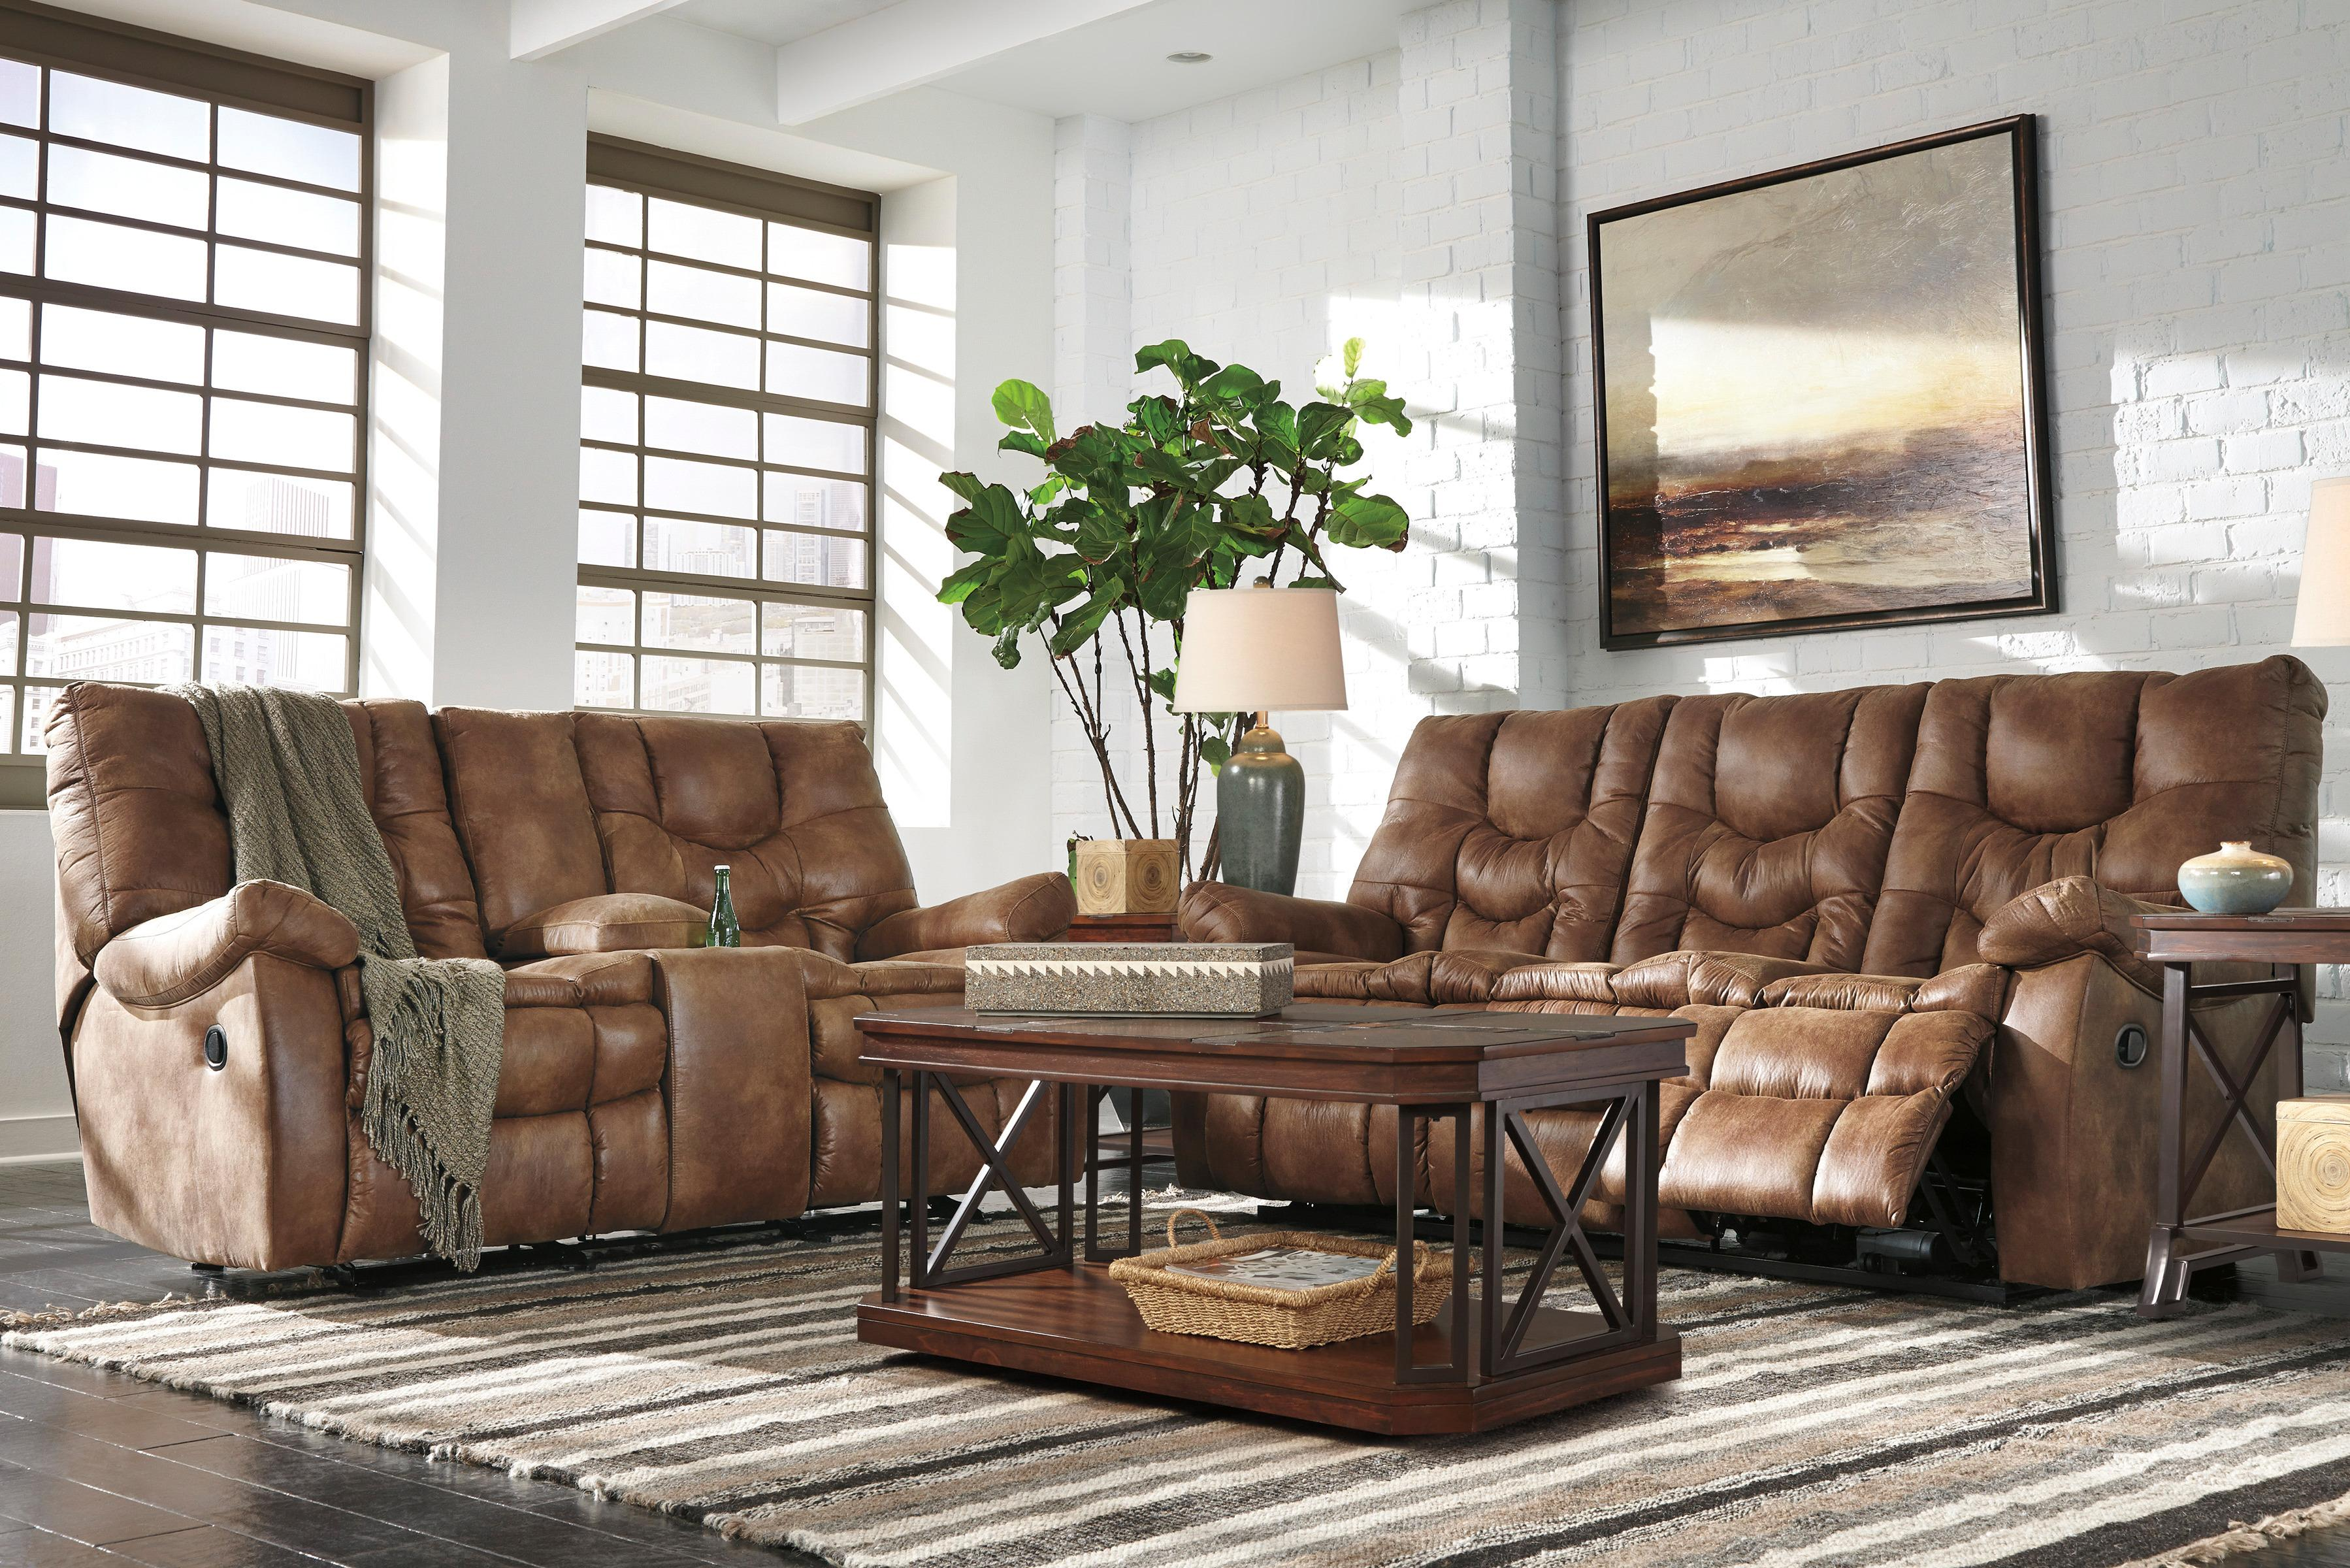 Ashley Homestore In Tupelo Ms Furniture Stores Yellow Pages Directory Inc